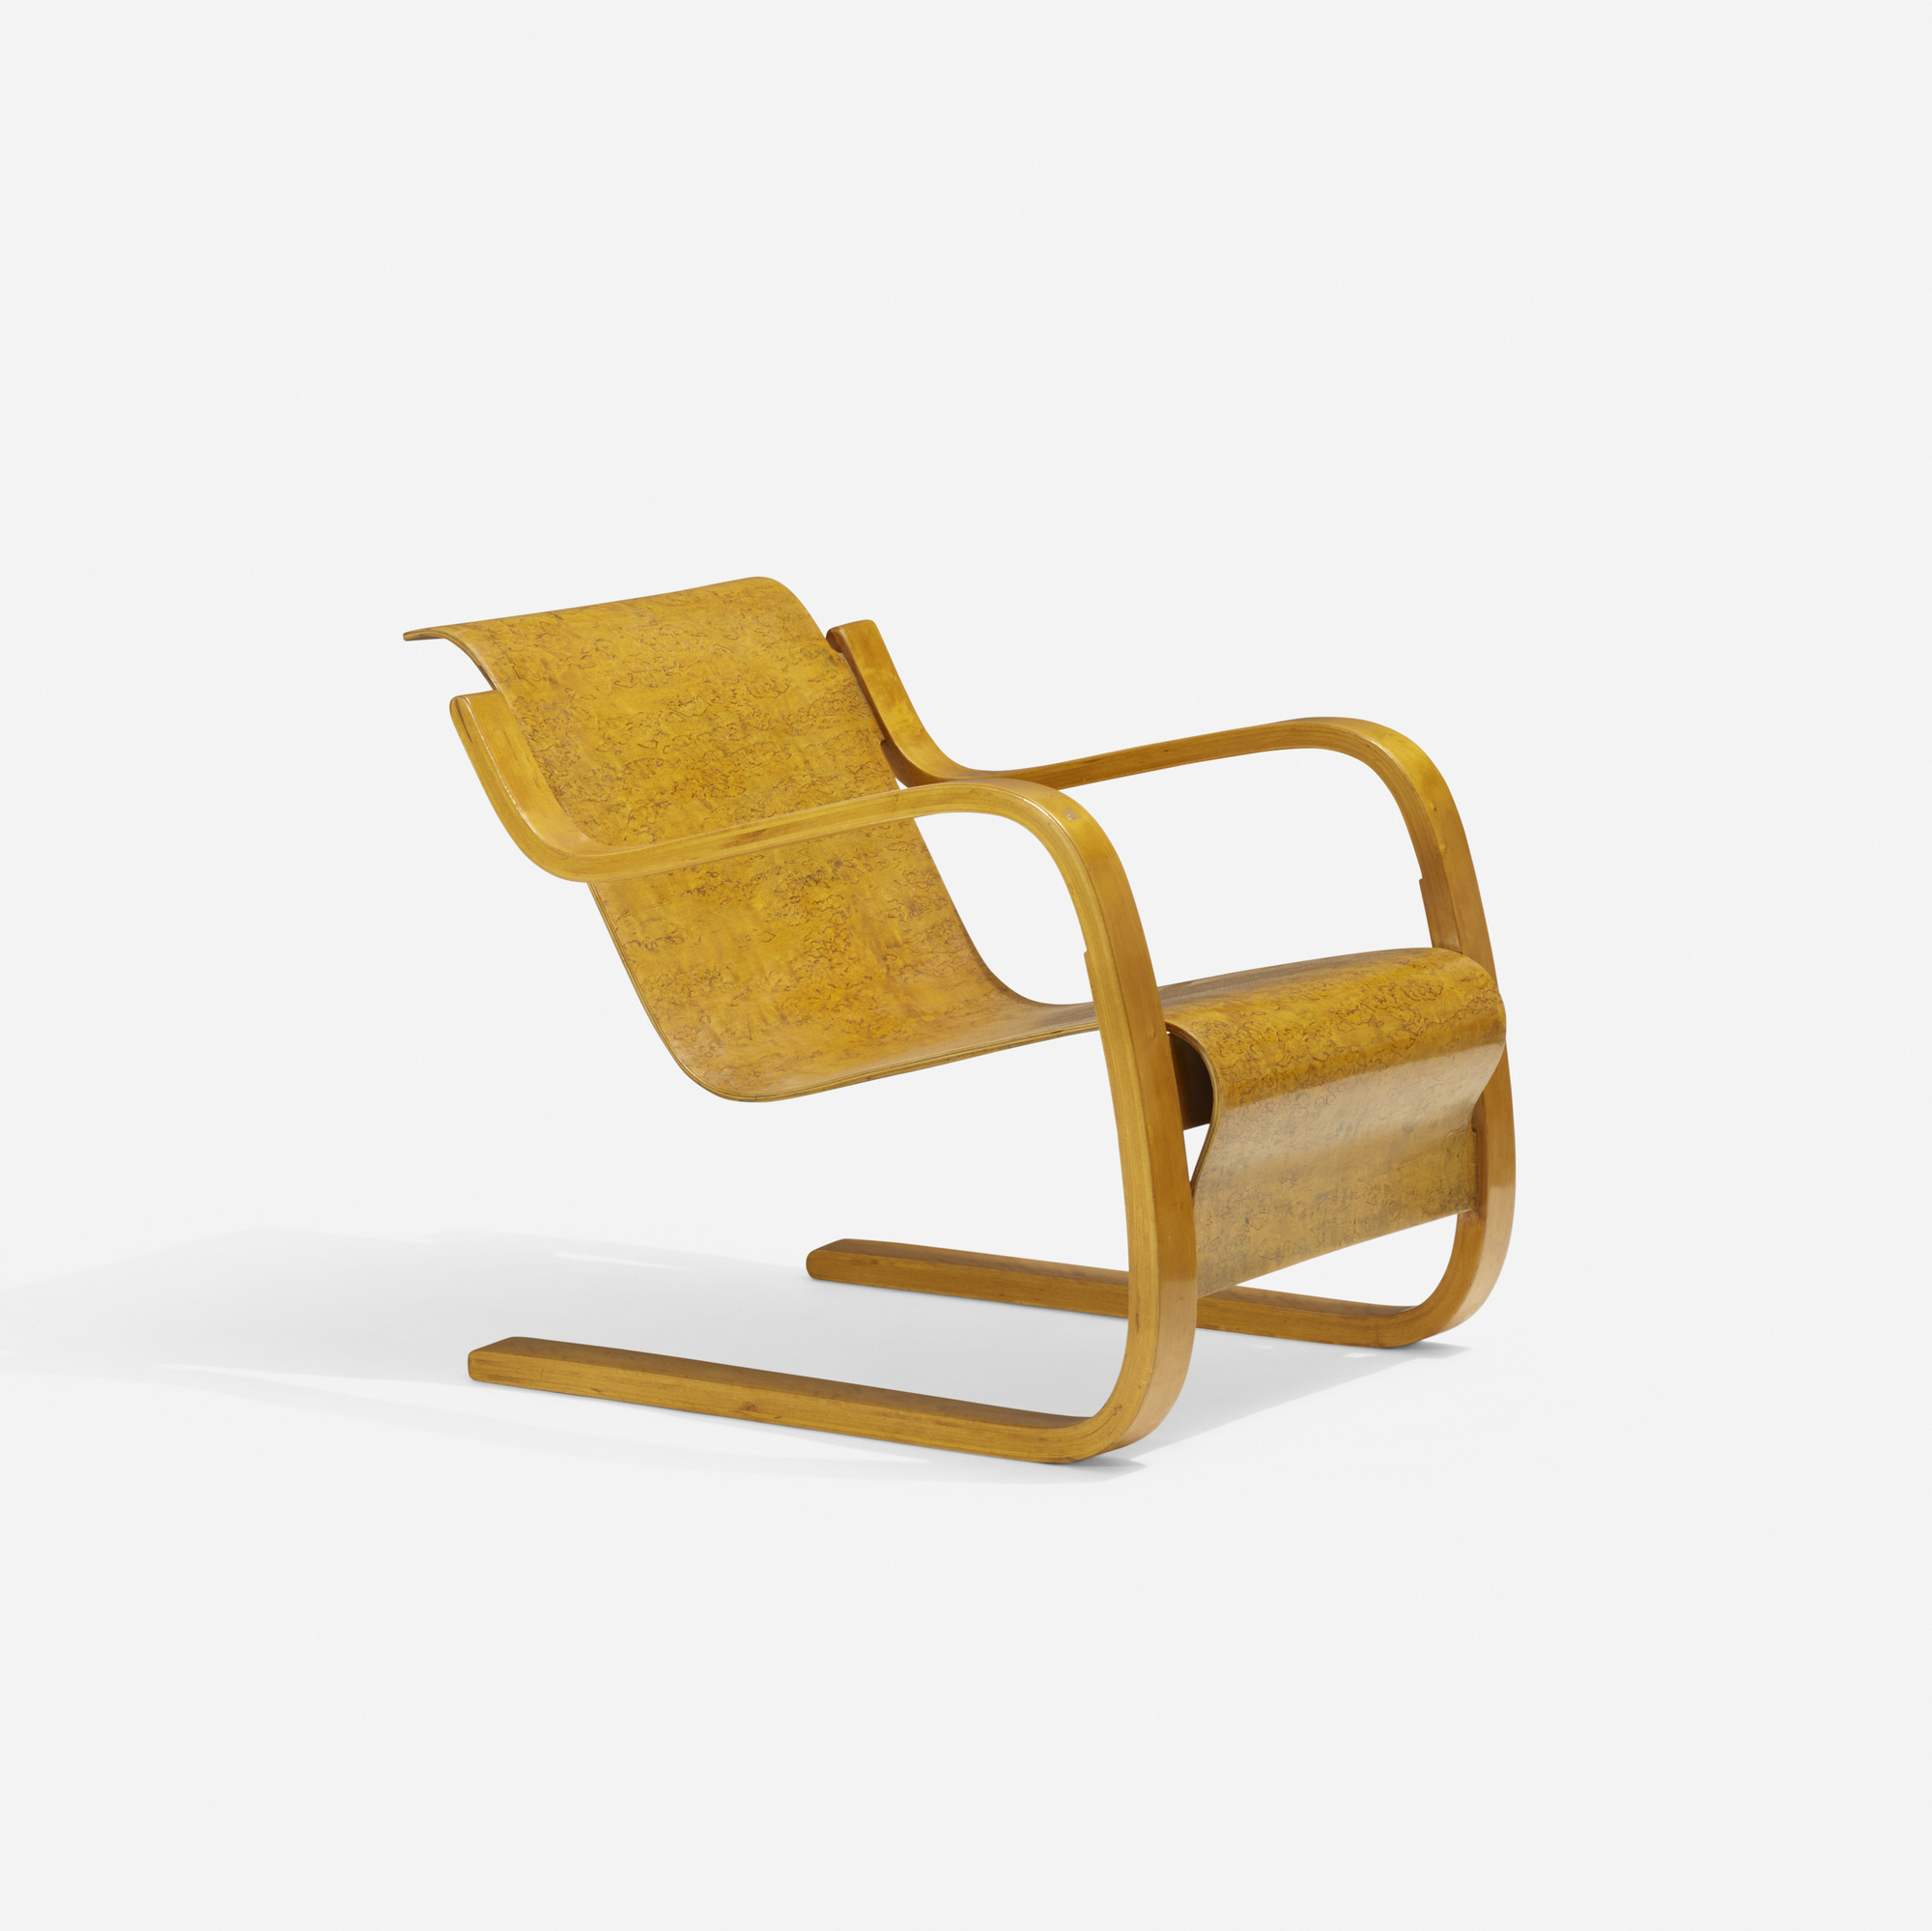 330: Alvar Aalto / Cantilever lounge chair, model 31/42 (1 of 4)